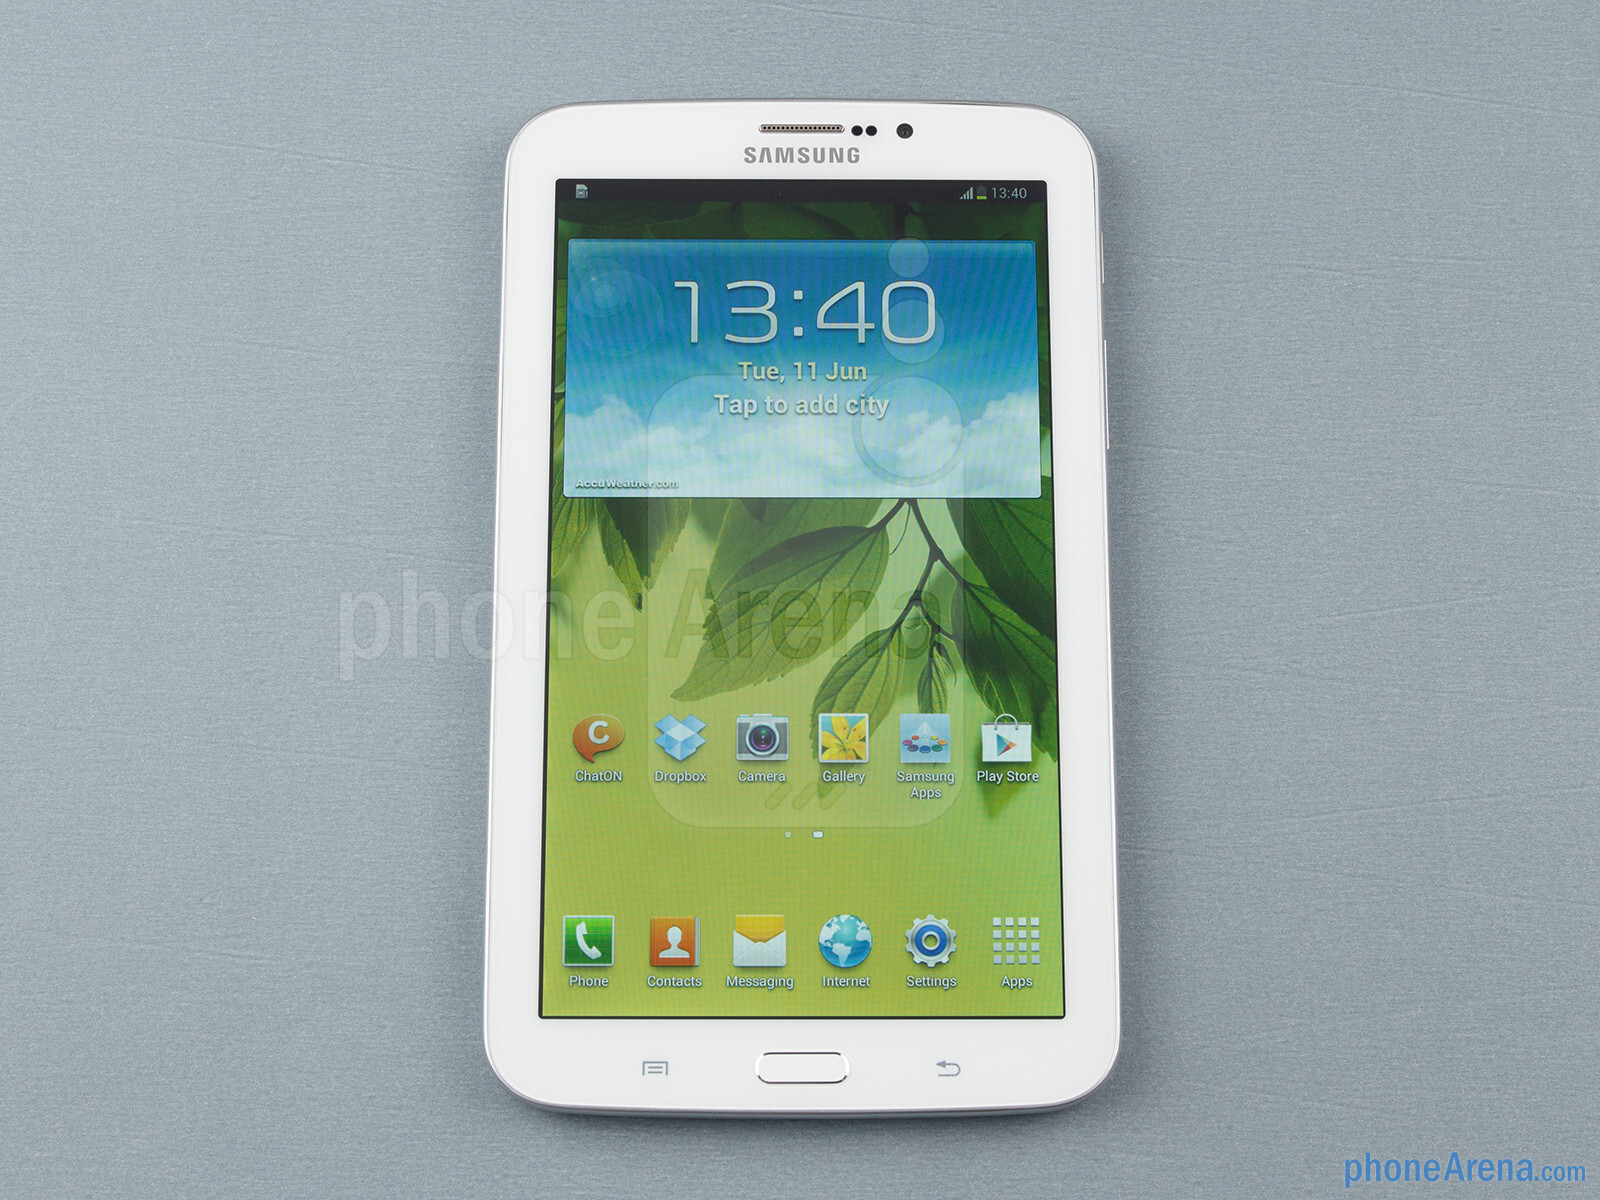 Jual Samsung Galaxy Tab 3 7 Inch Preview 3v Welcome